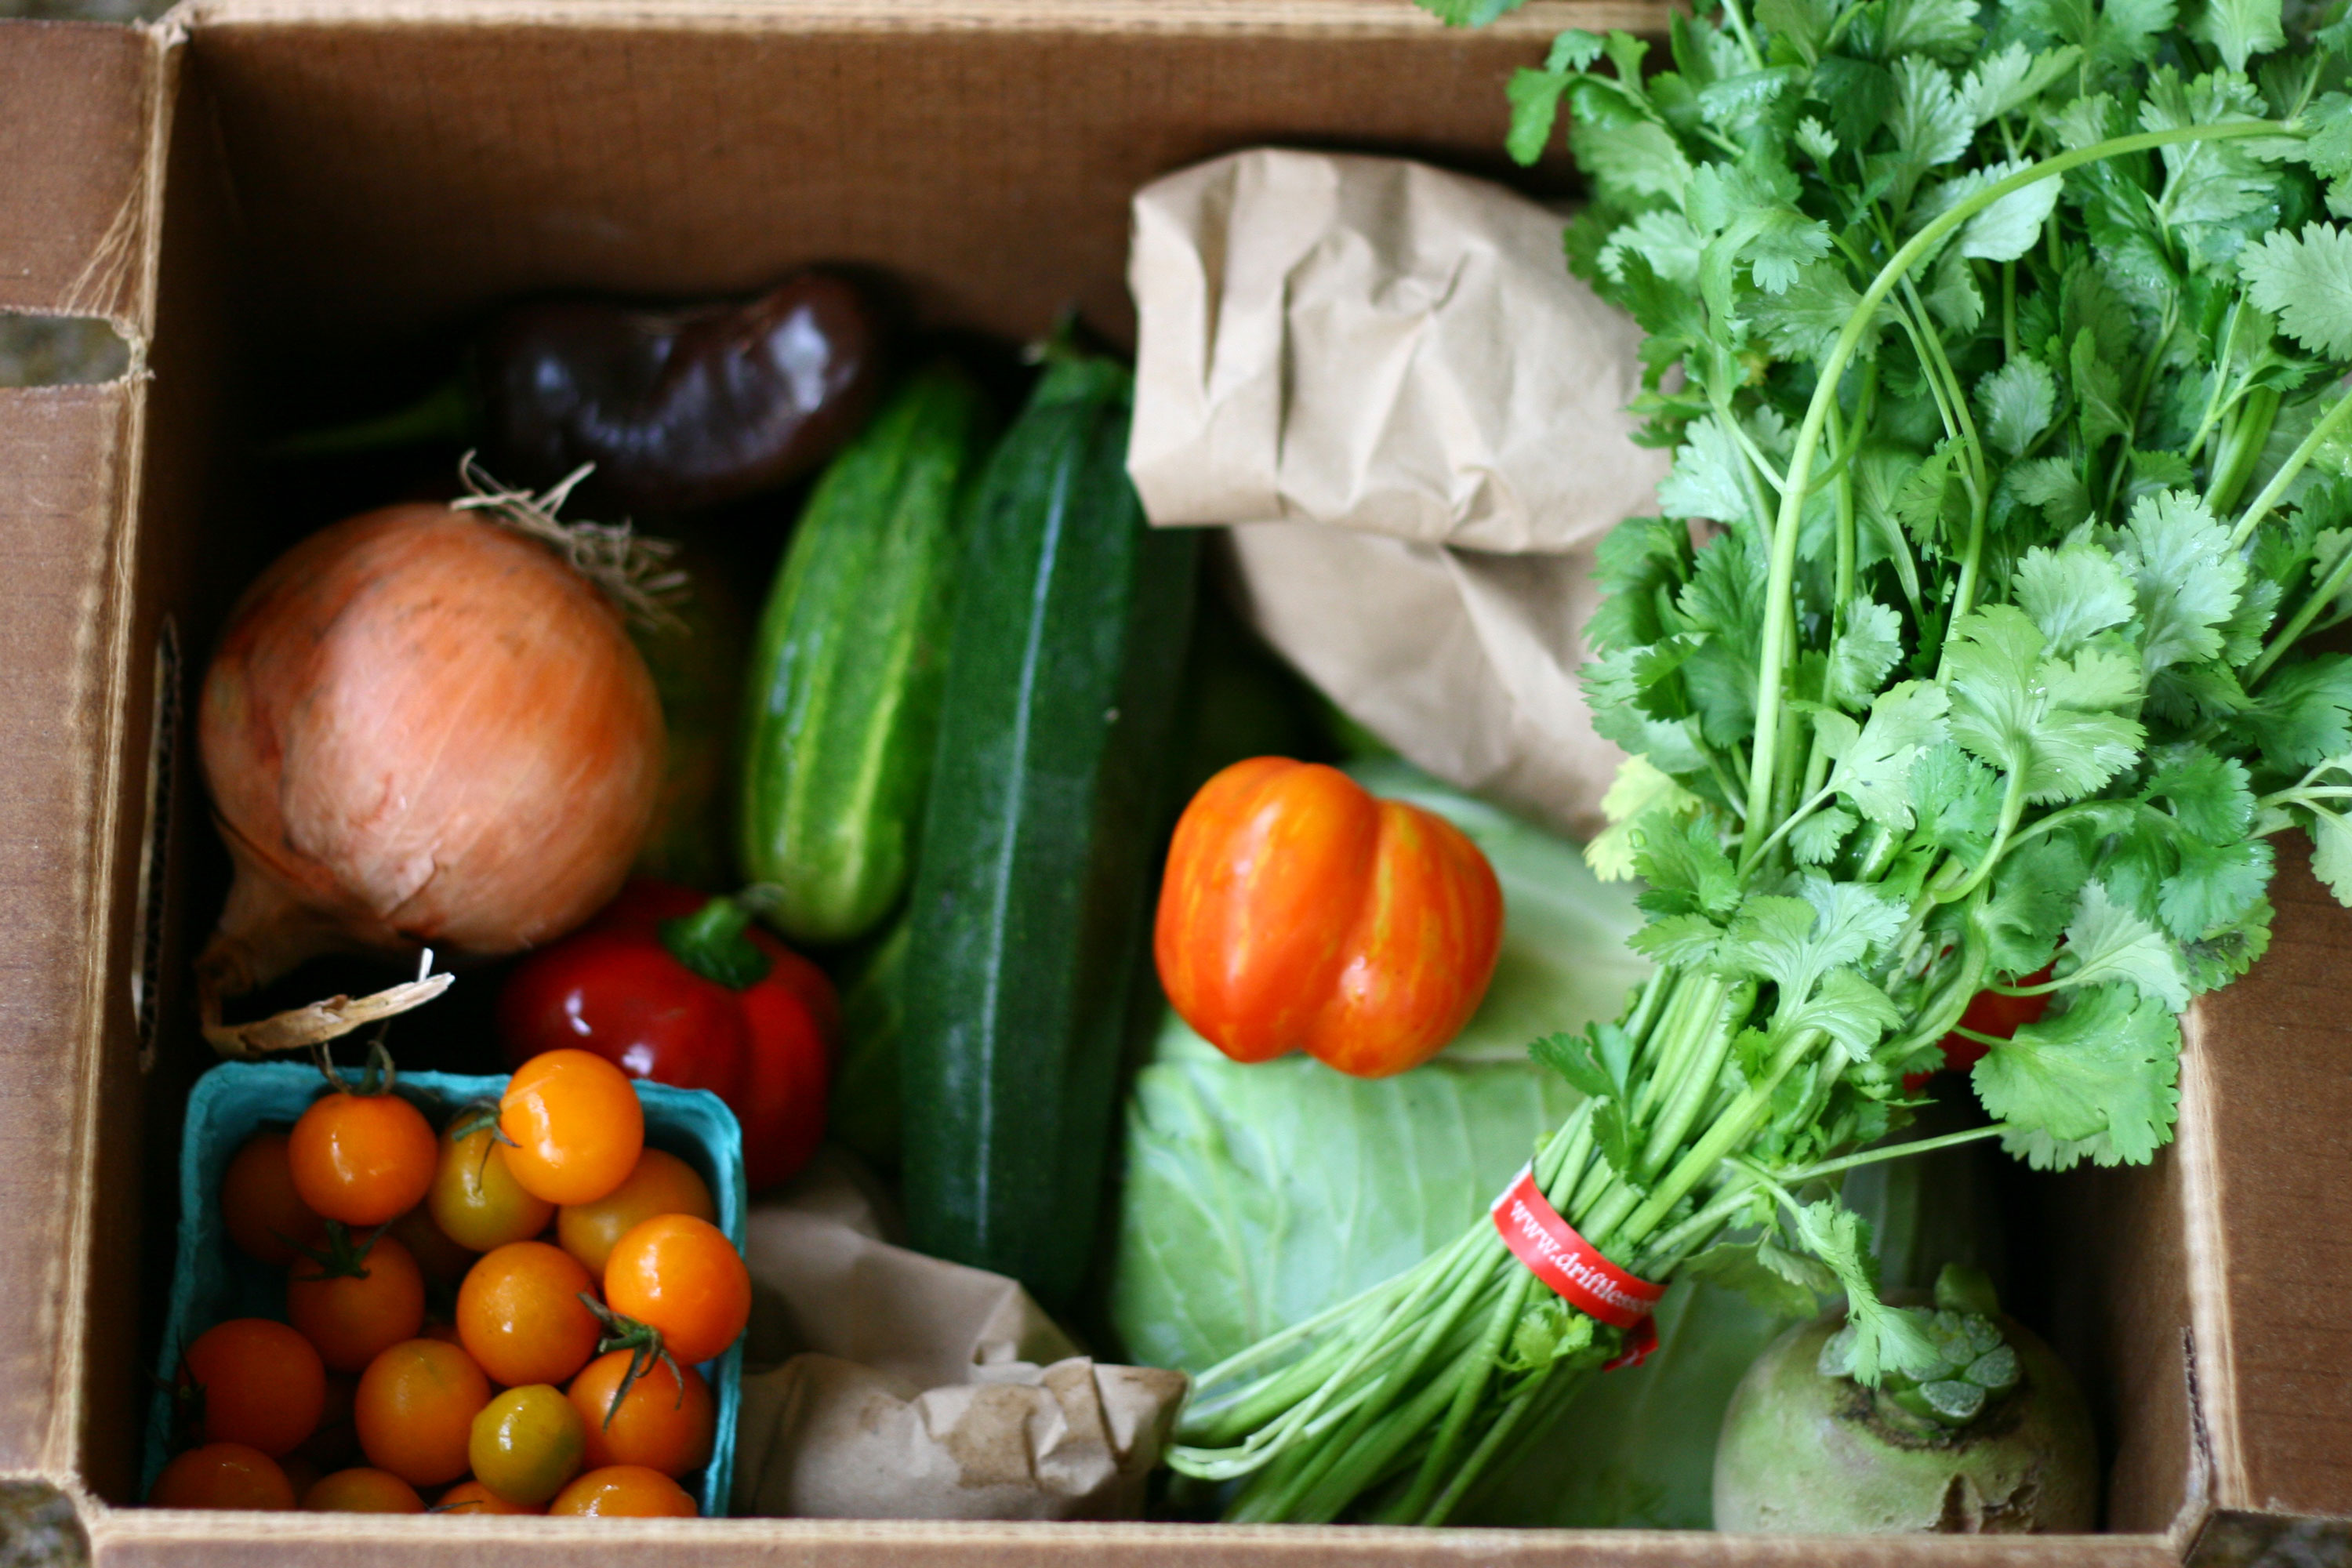 CSA box with tomatoes, parsley, cucumber, and onions